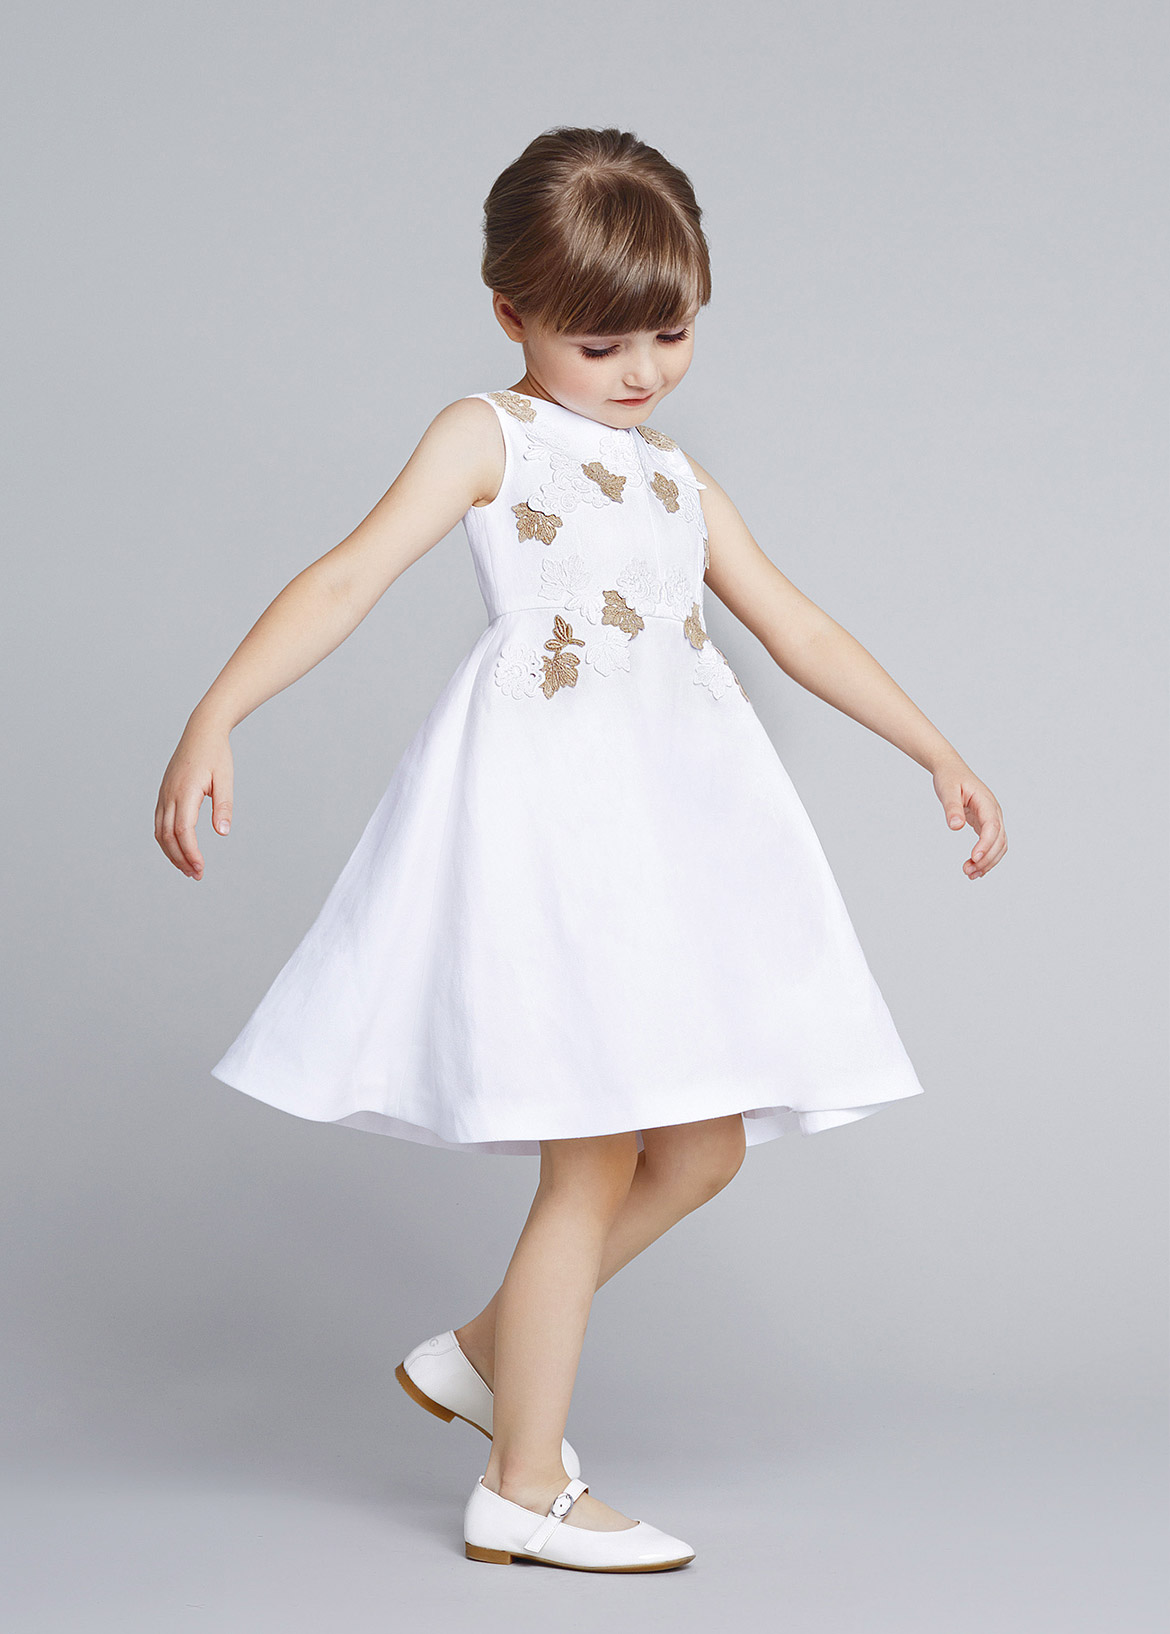 dolce-and-gabbana-ss-2014-child-collection (26)